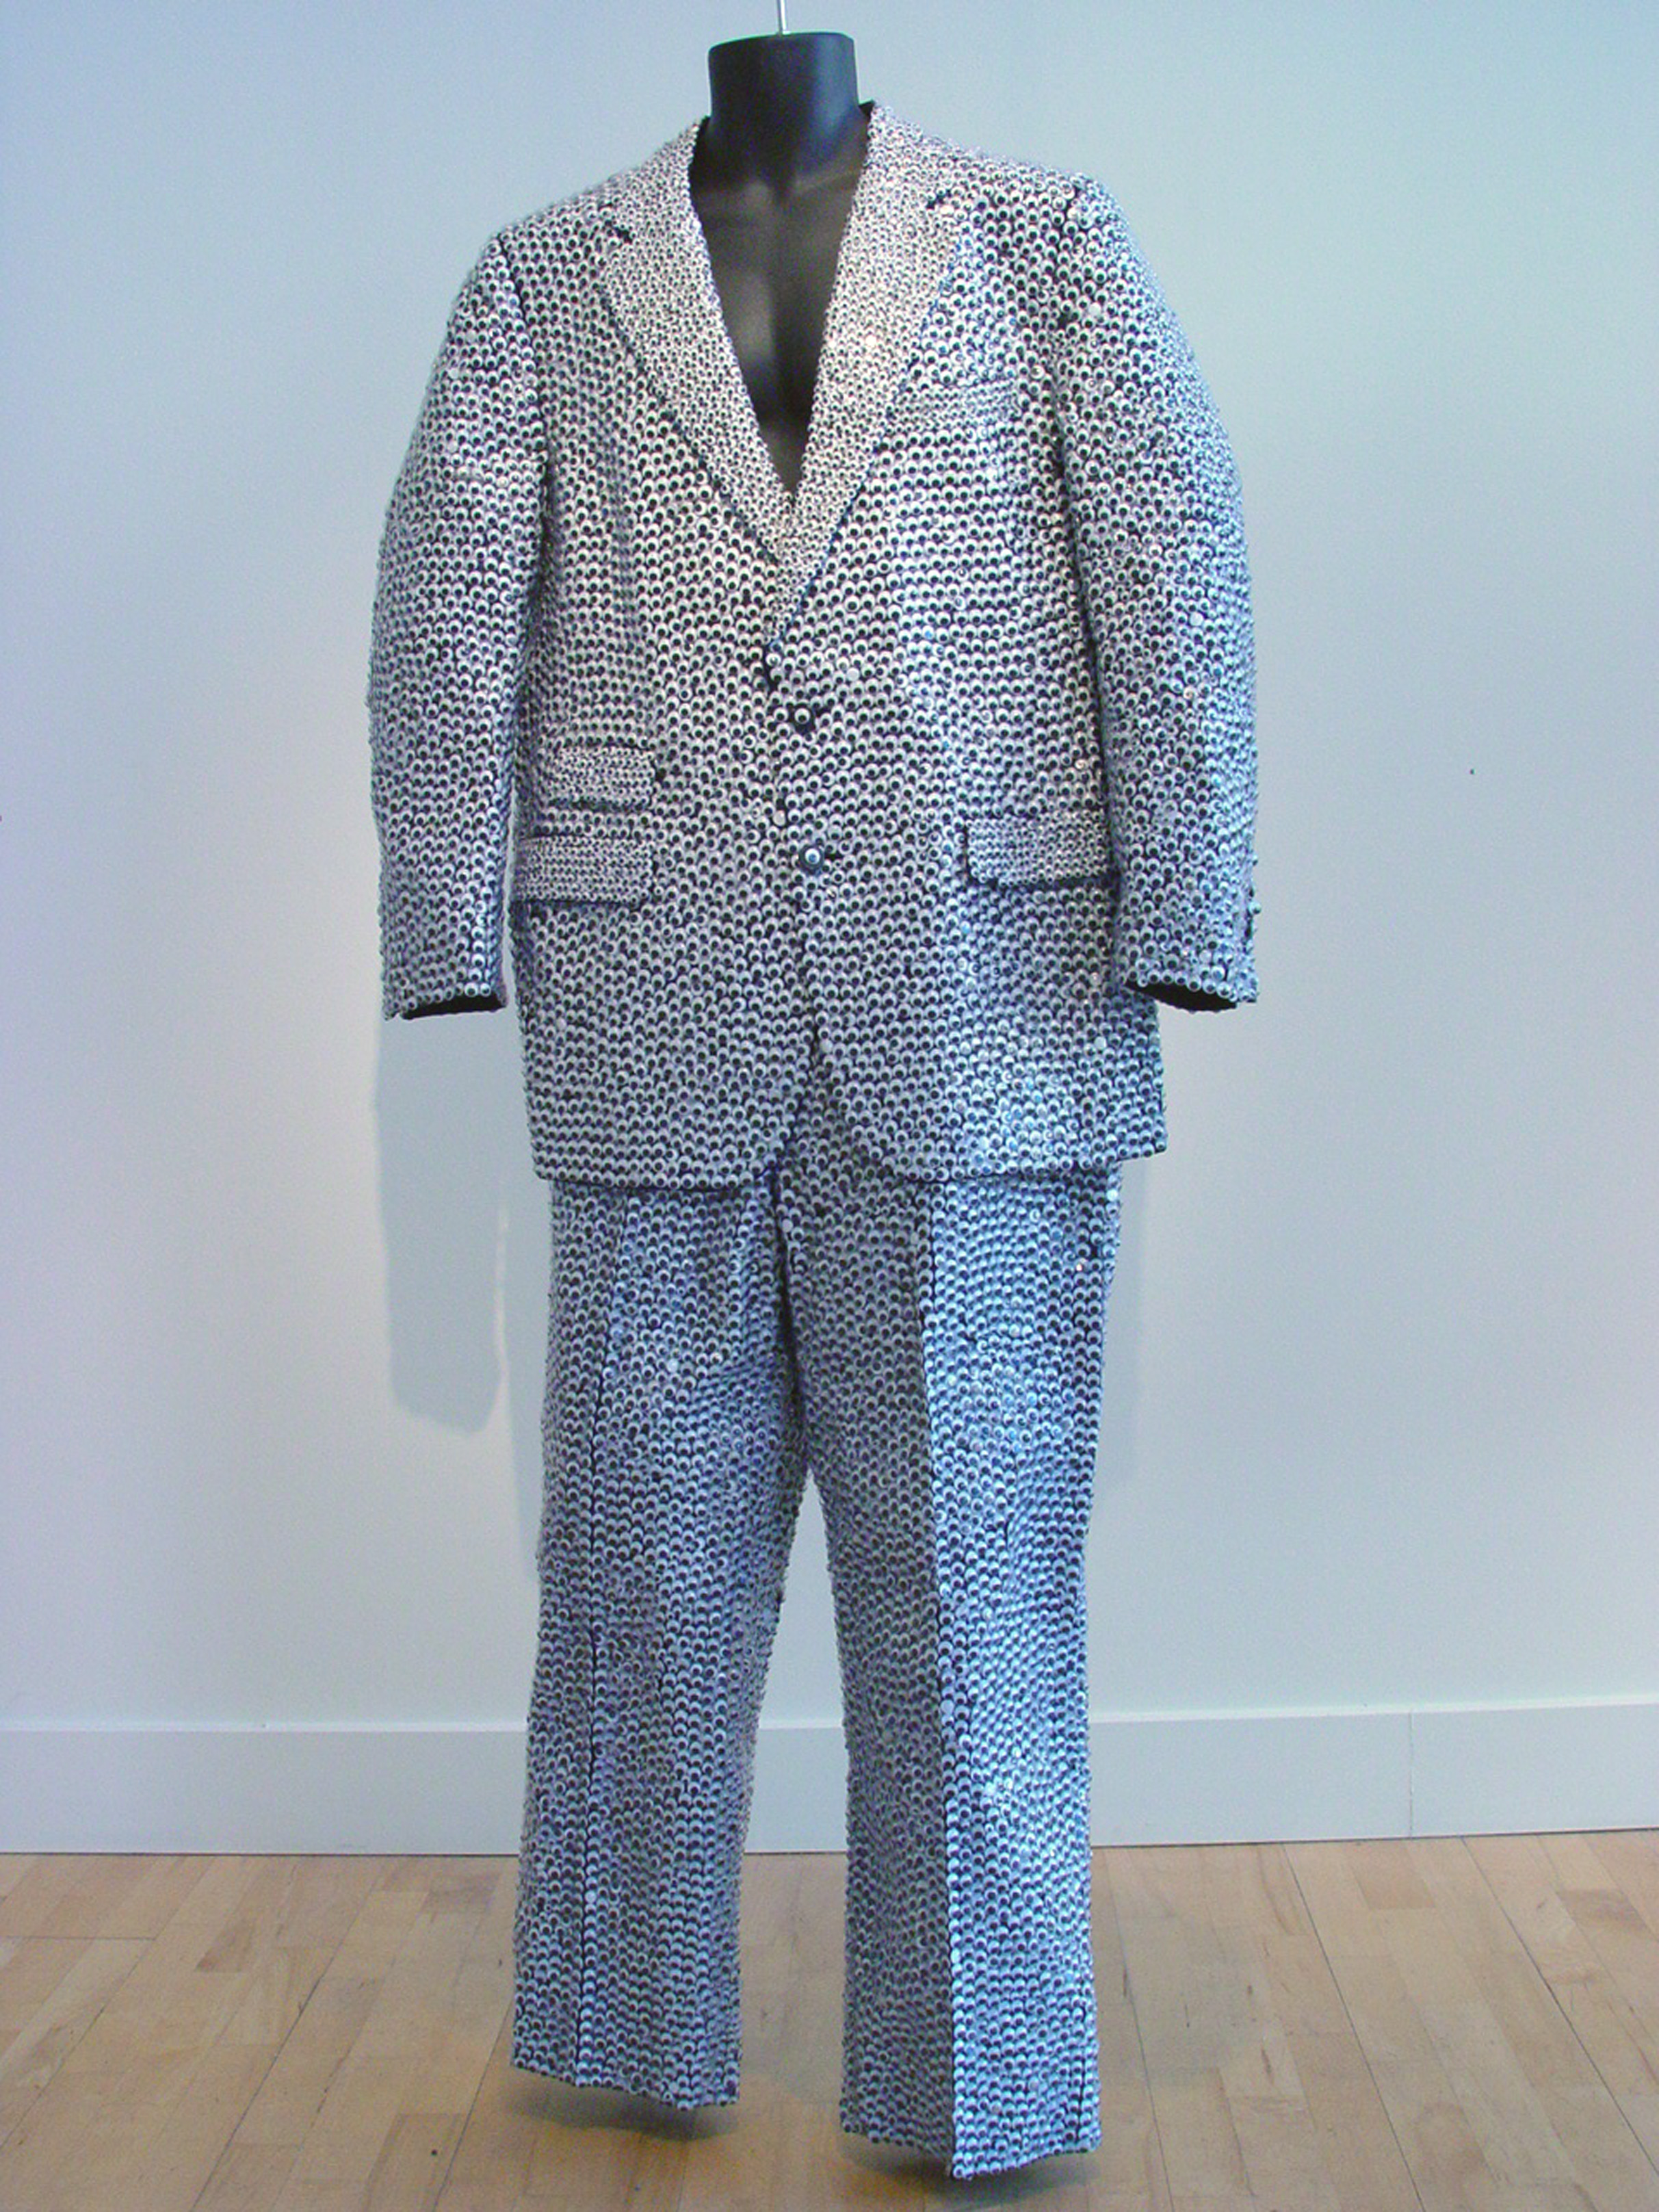 Garment for the Perpetually Insecure.  Wool blend mens suit, adhesive, wiggle eyes.